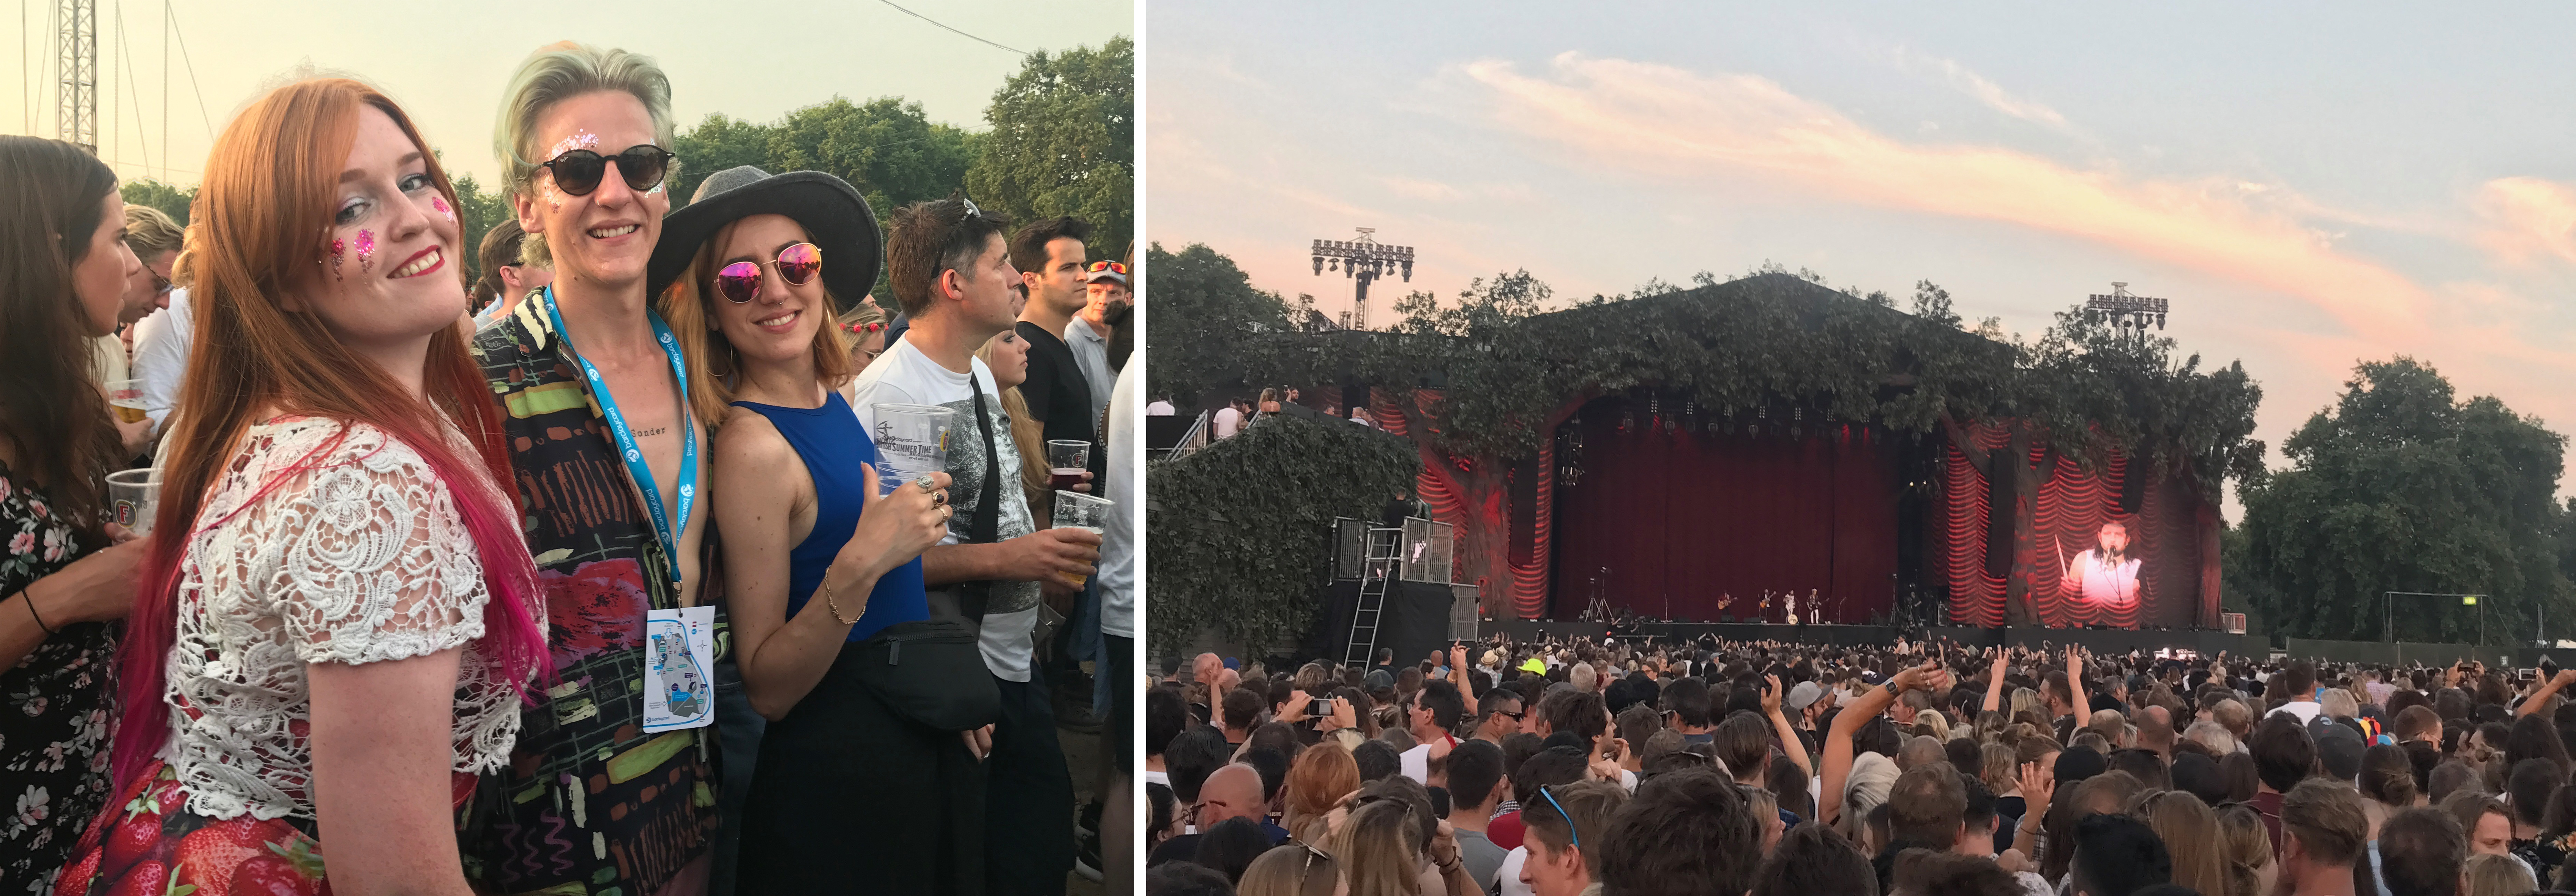 Kings of Leon paling the Great Oak Stage